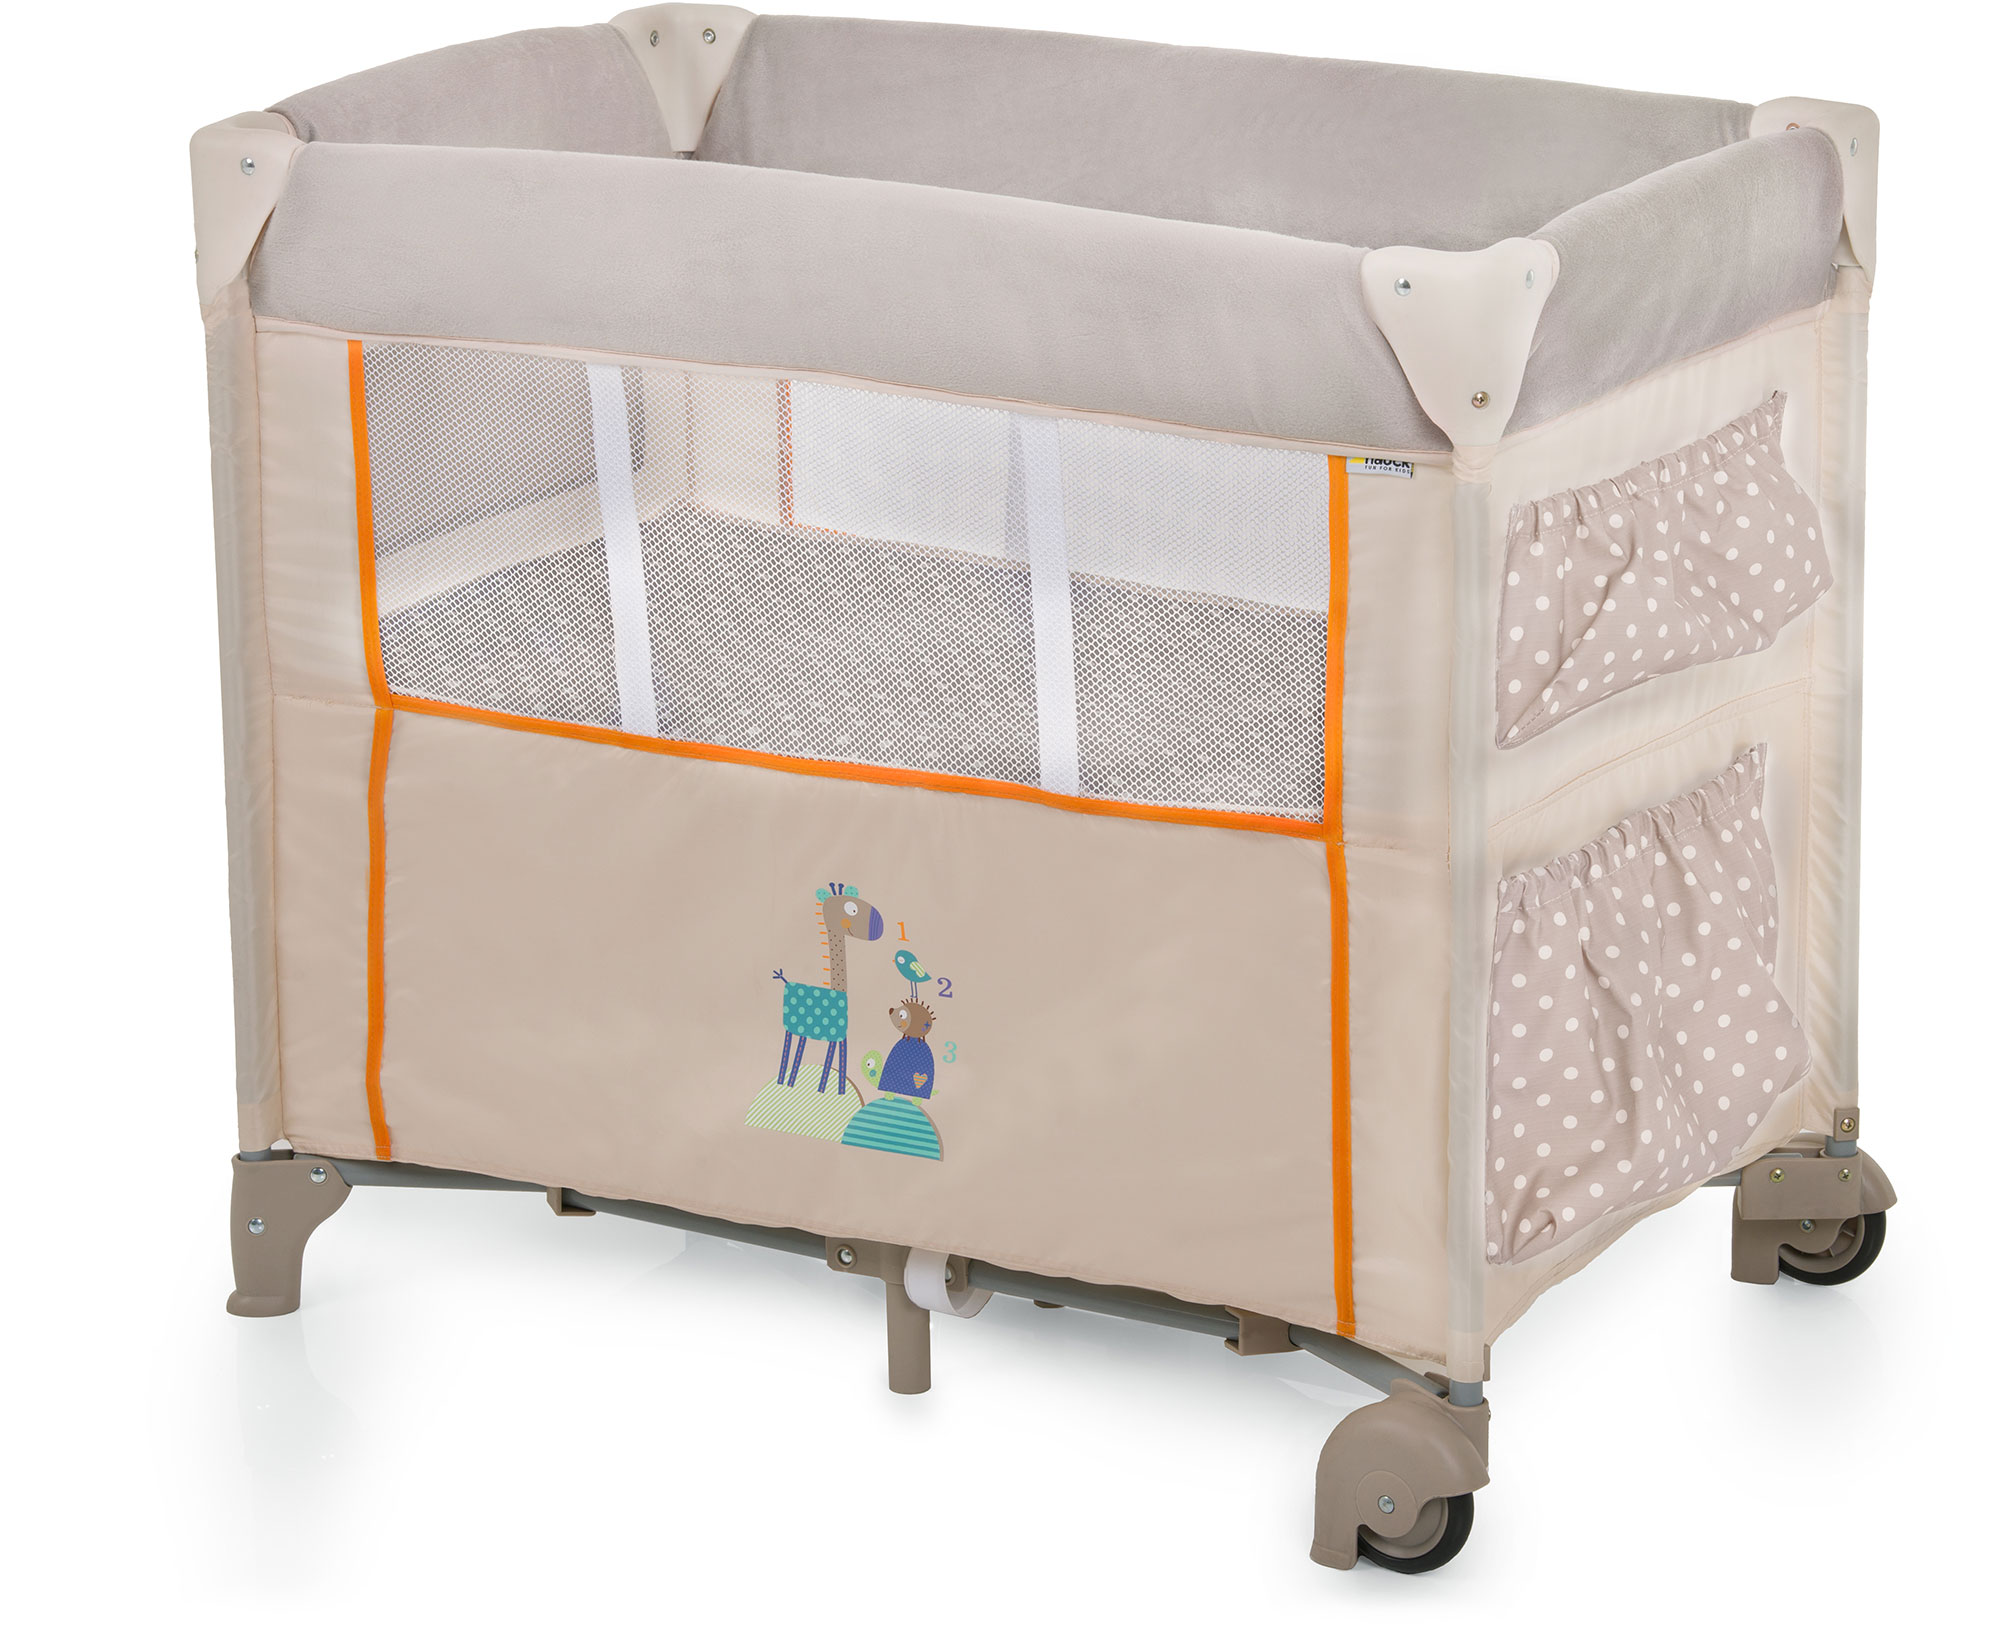 Hauck babynest dream n care animals bassinet travel cot for Beds n dreams